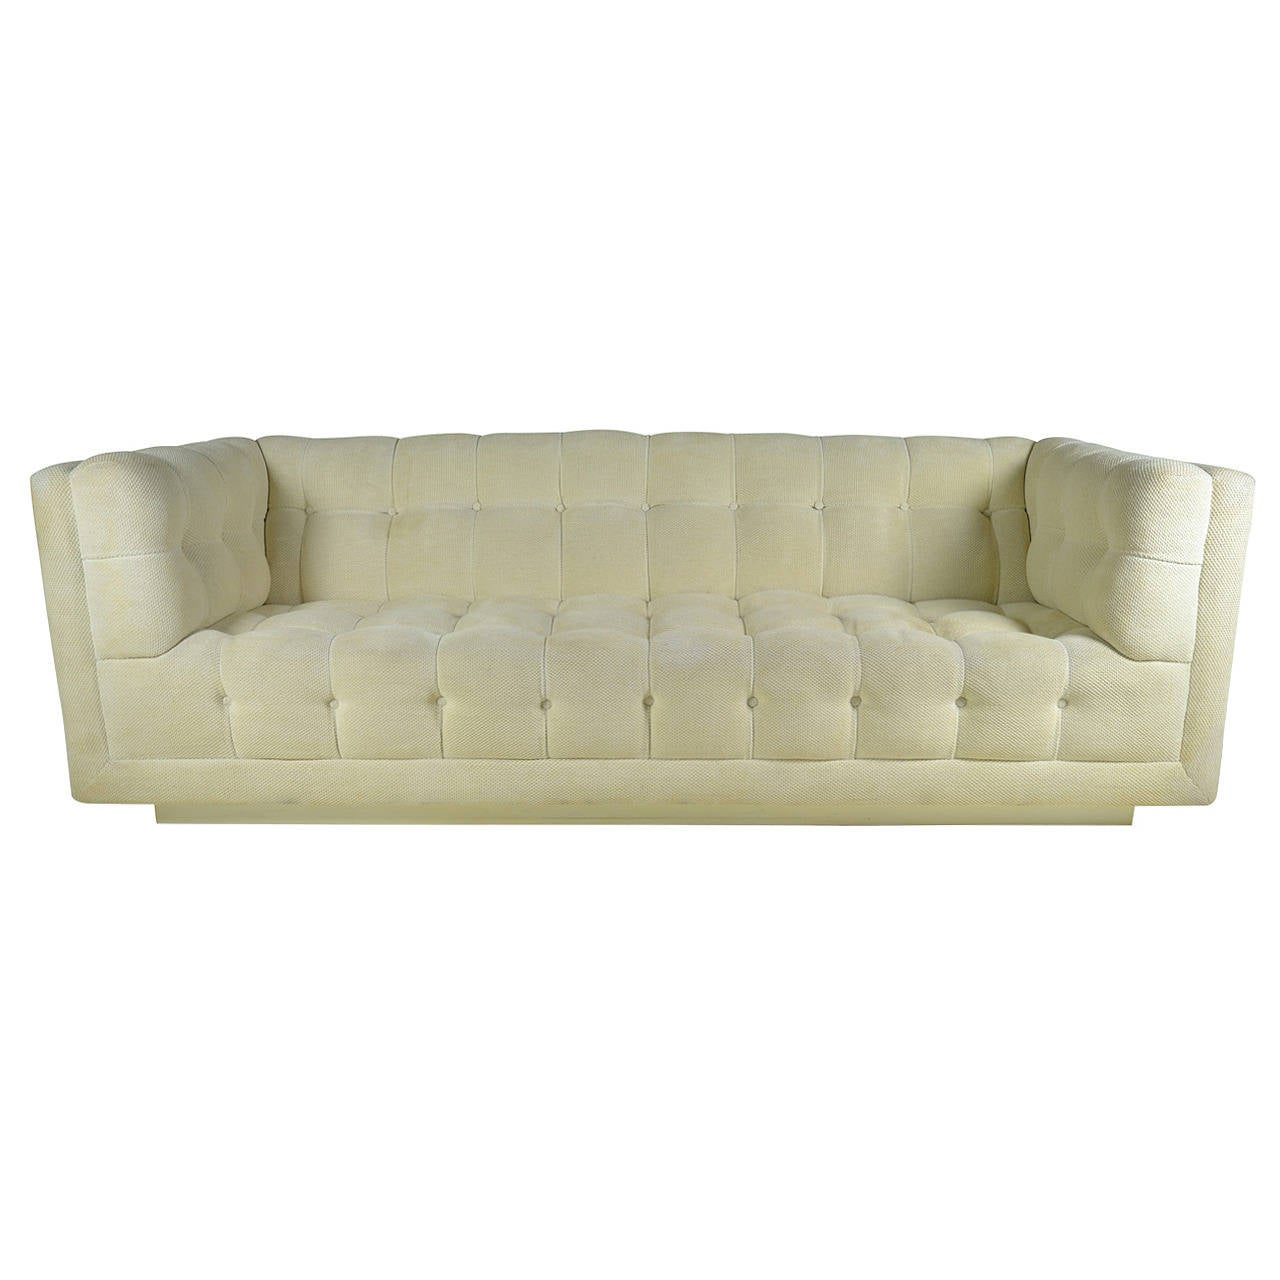 modern chesterfield sofa circa 1970 for sale at 1stdibs. Black Bedroom Furniture Sets. Home Design Ideas